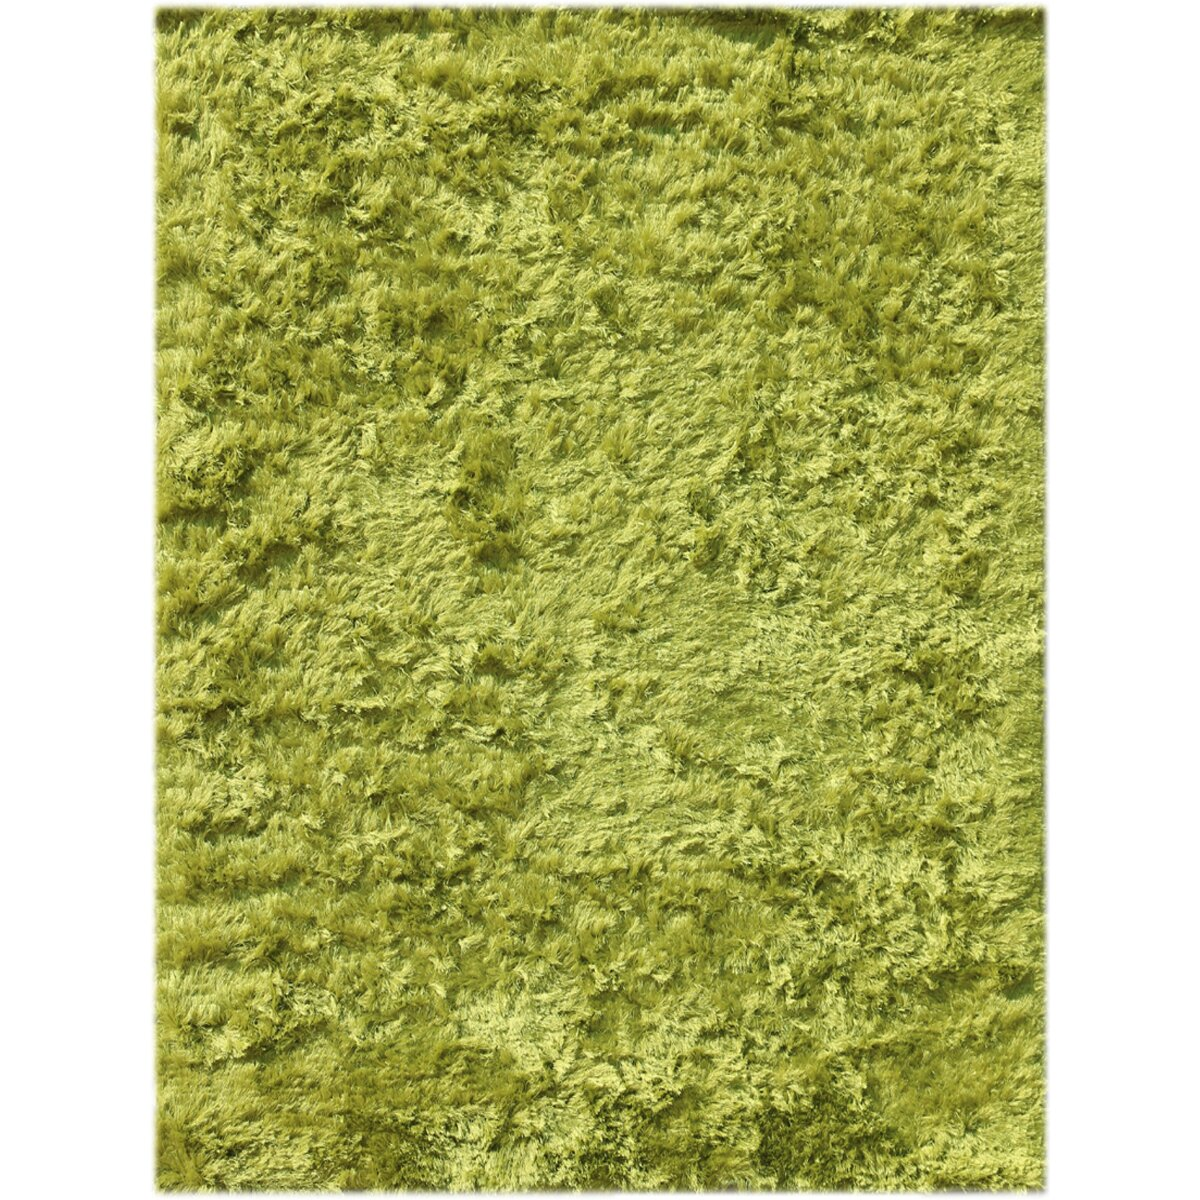 Lime Green Area Rug: AMER Rugs Elements Neon Lime Green Area Rug & Reviews